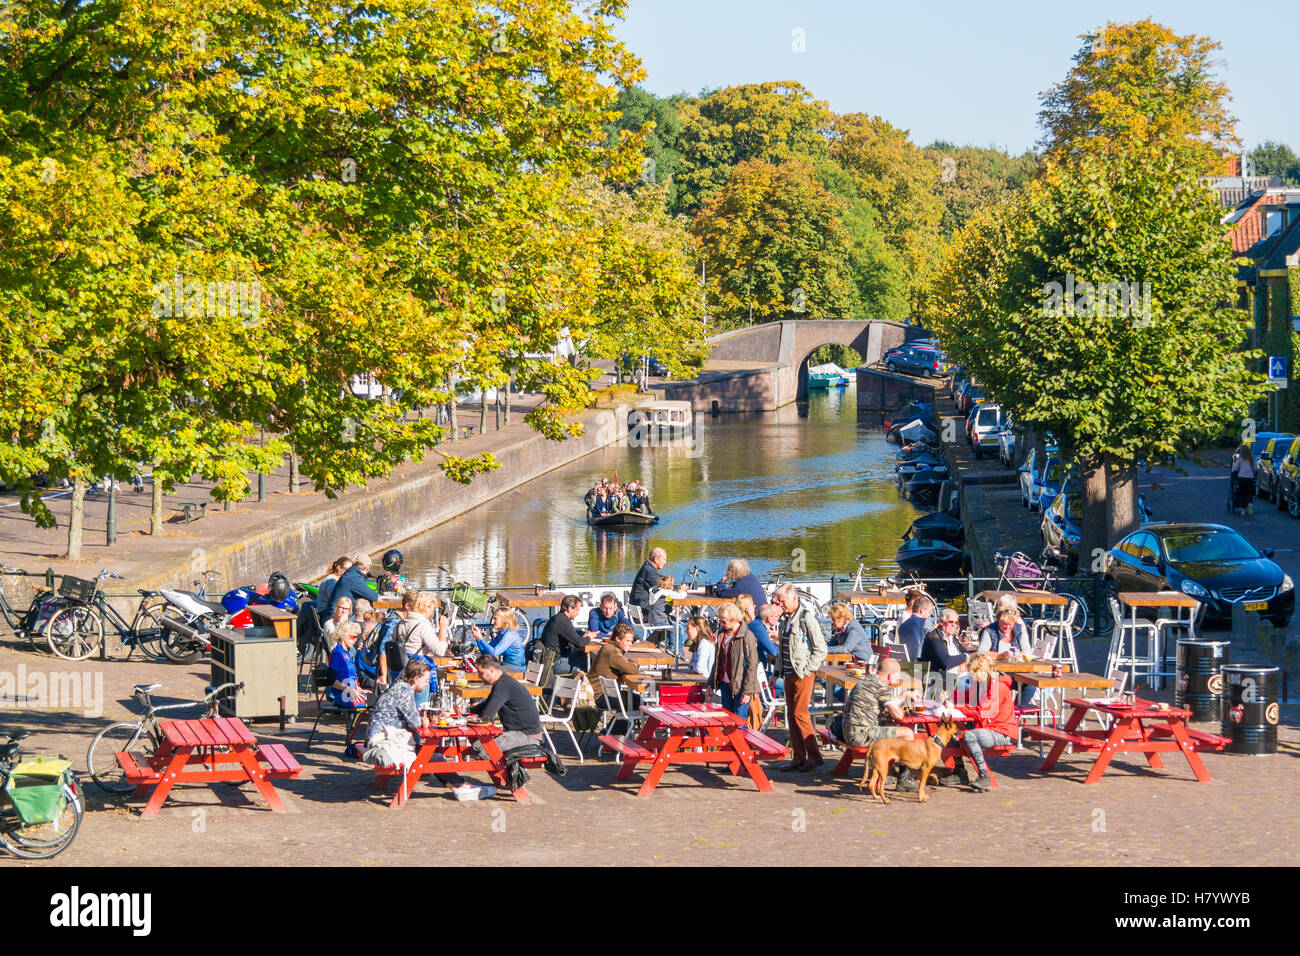 People on waterfront outdoor terrace of cafe and tourboat on canal in Naarden-Vesting, North Holland, Netherlands - Stock Image